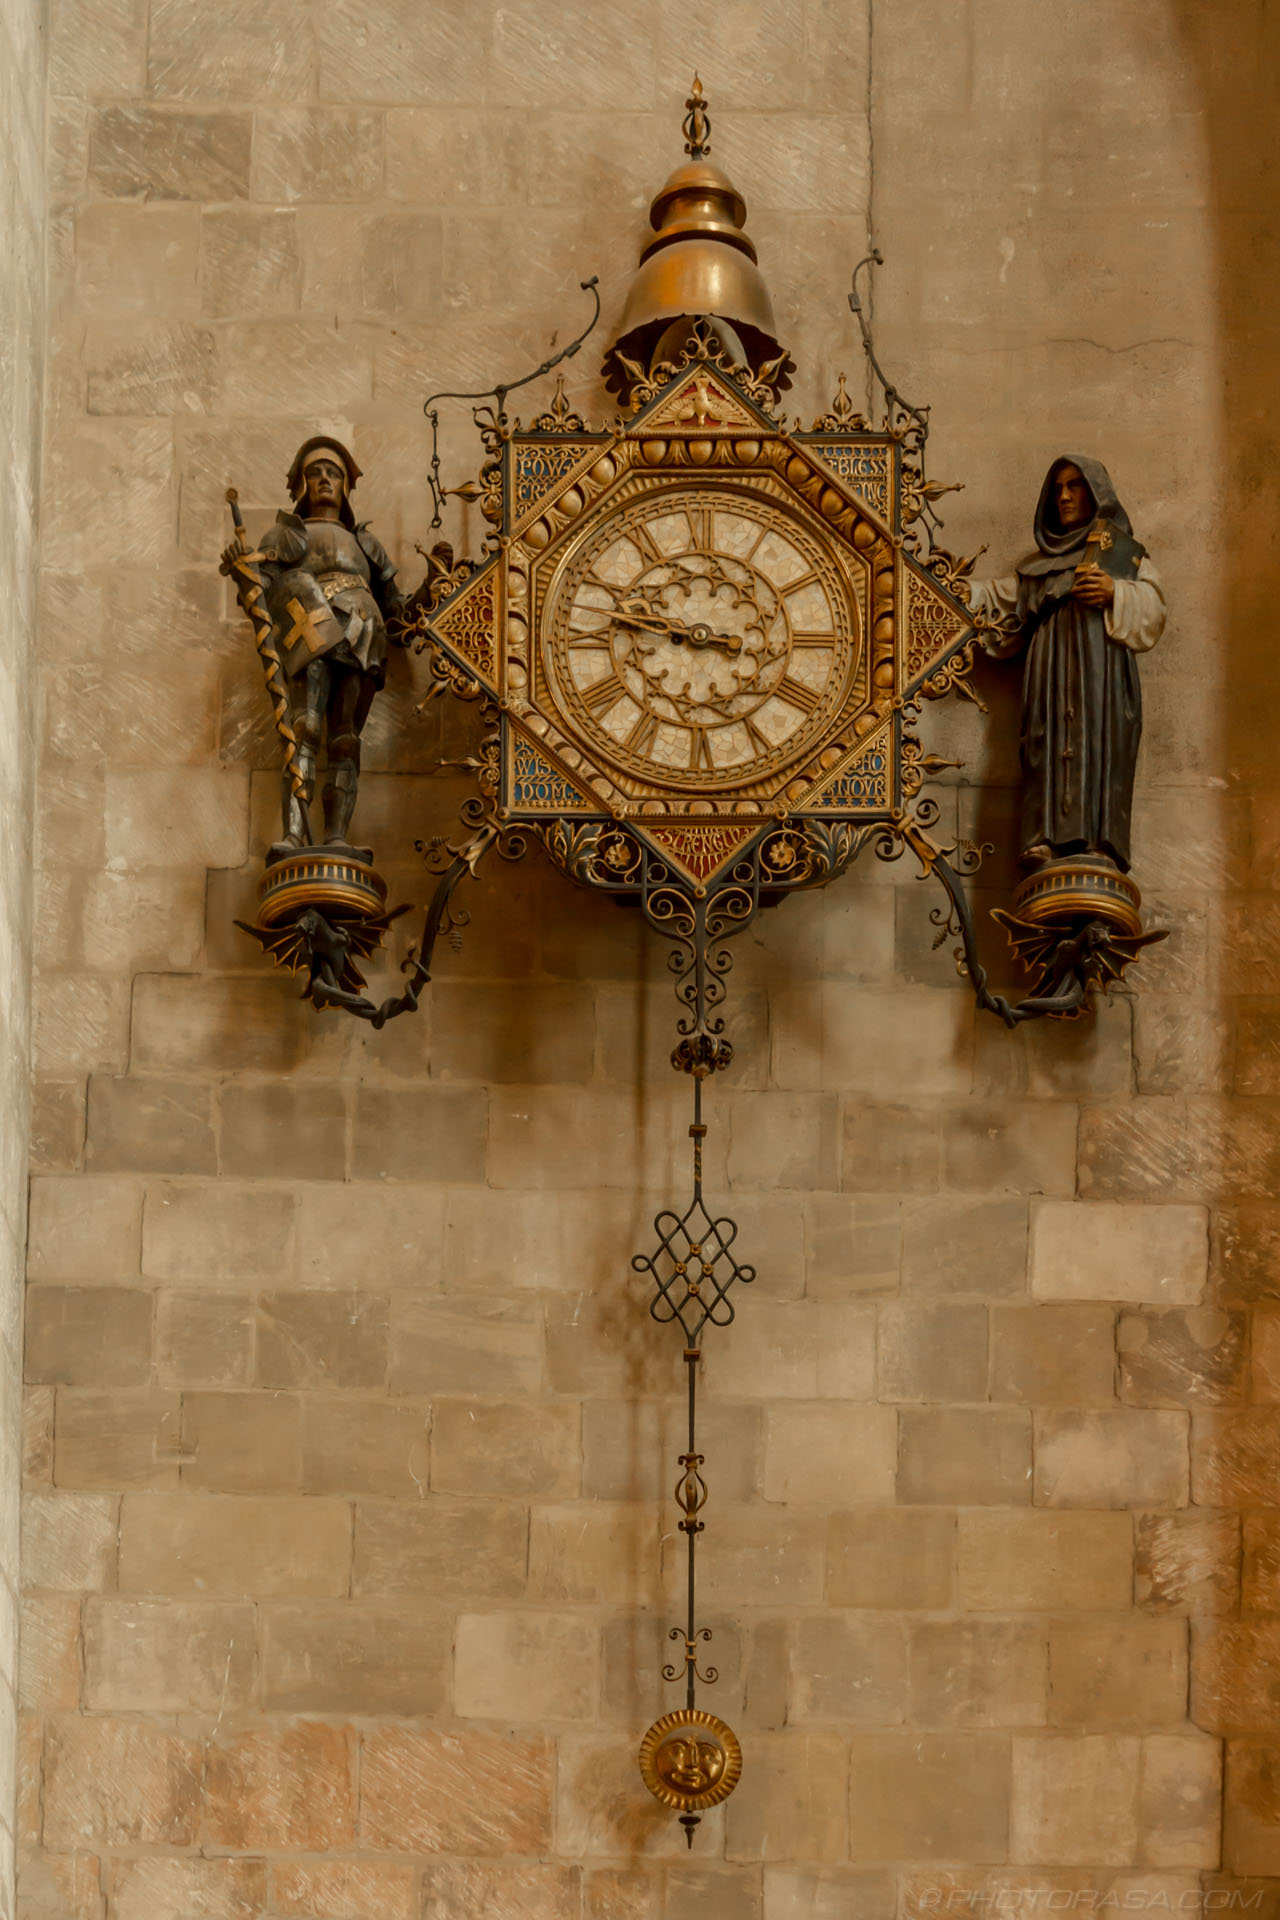 http://photorasa.com/places/cathedrals/canterbury-cathedral/attachment/large-oranate-clock/